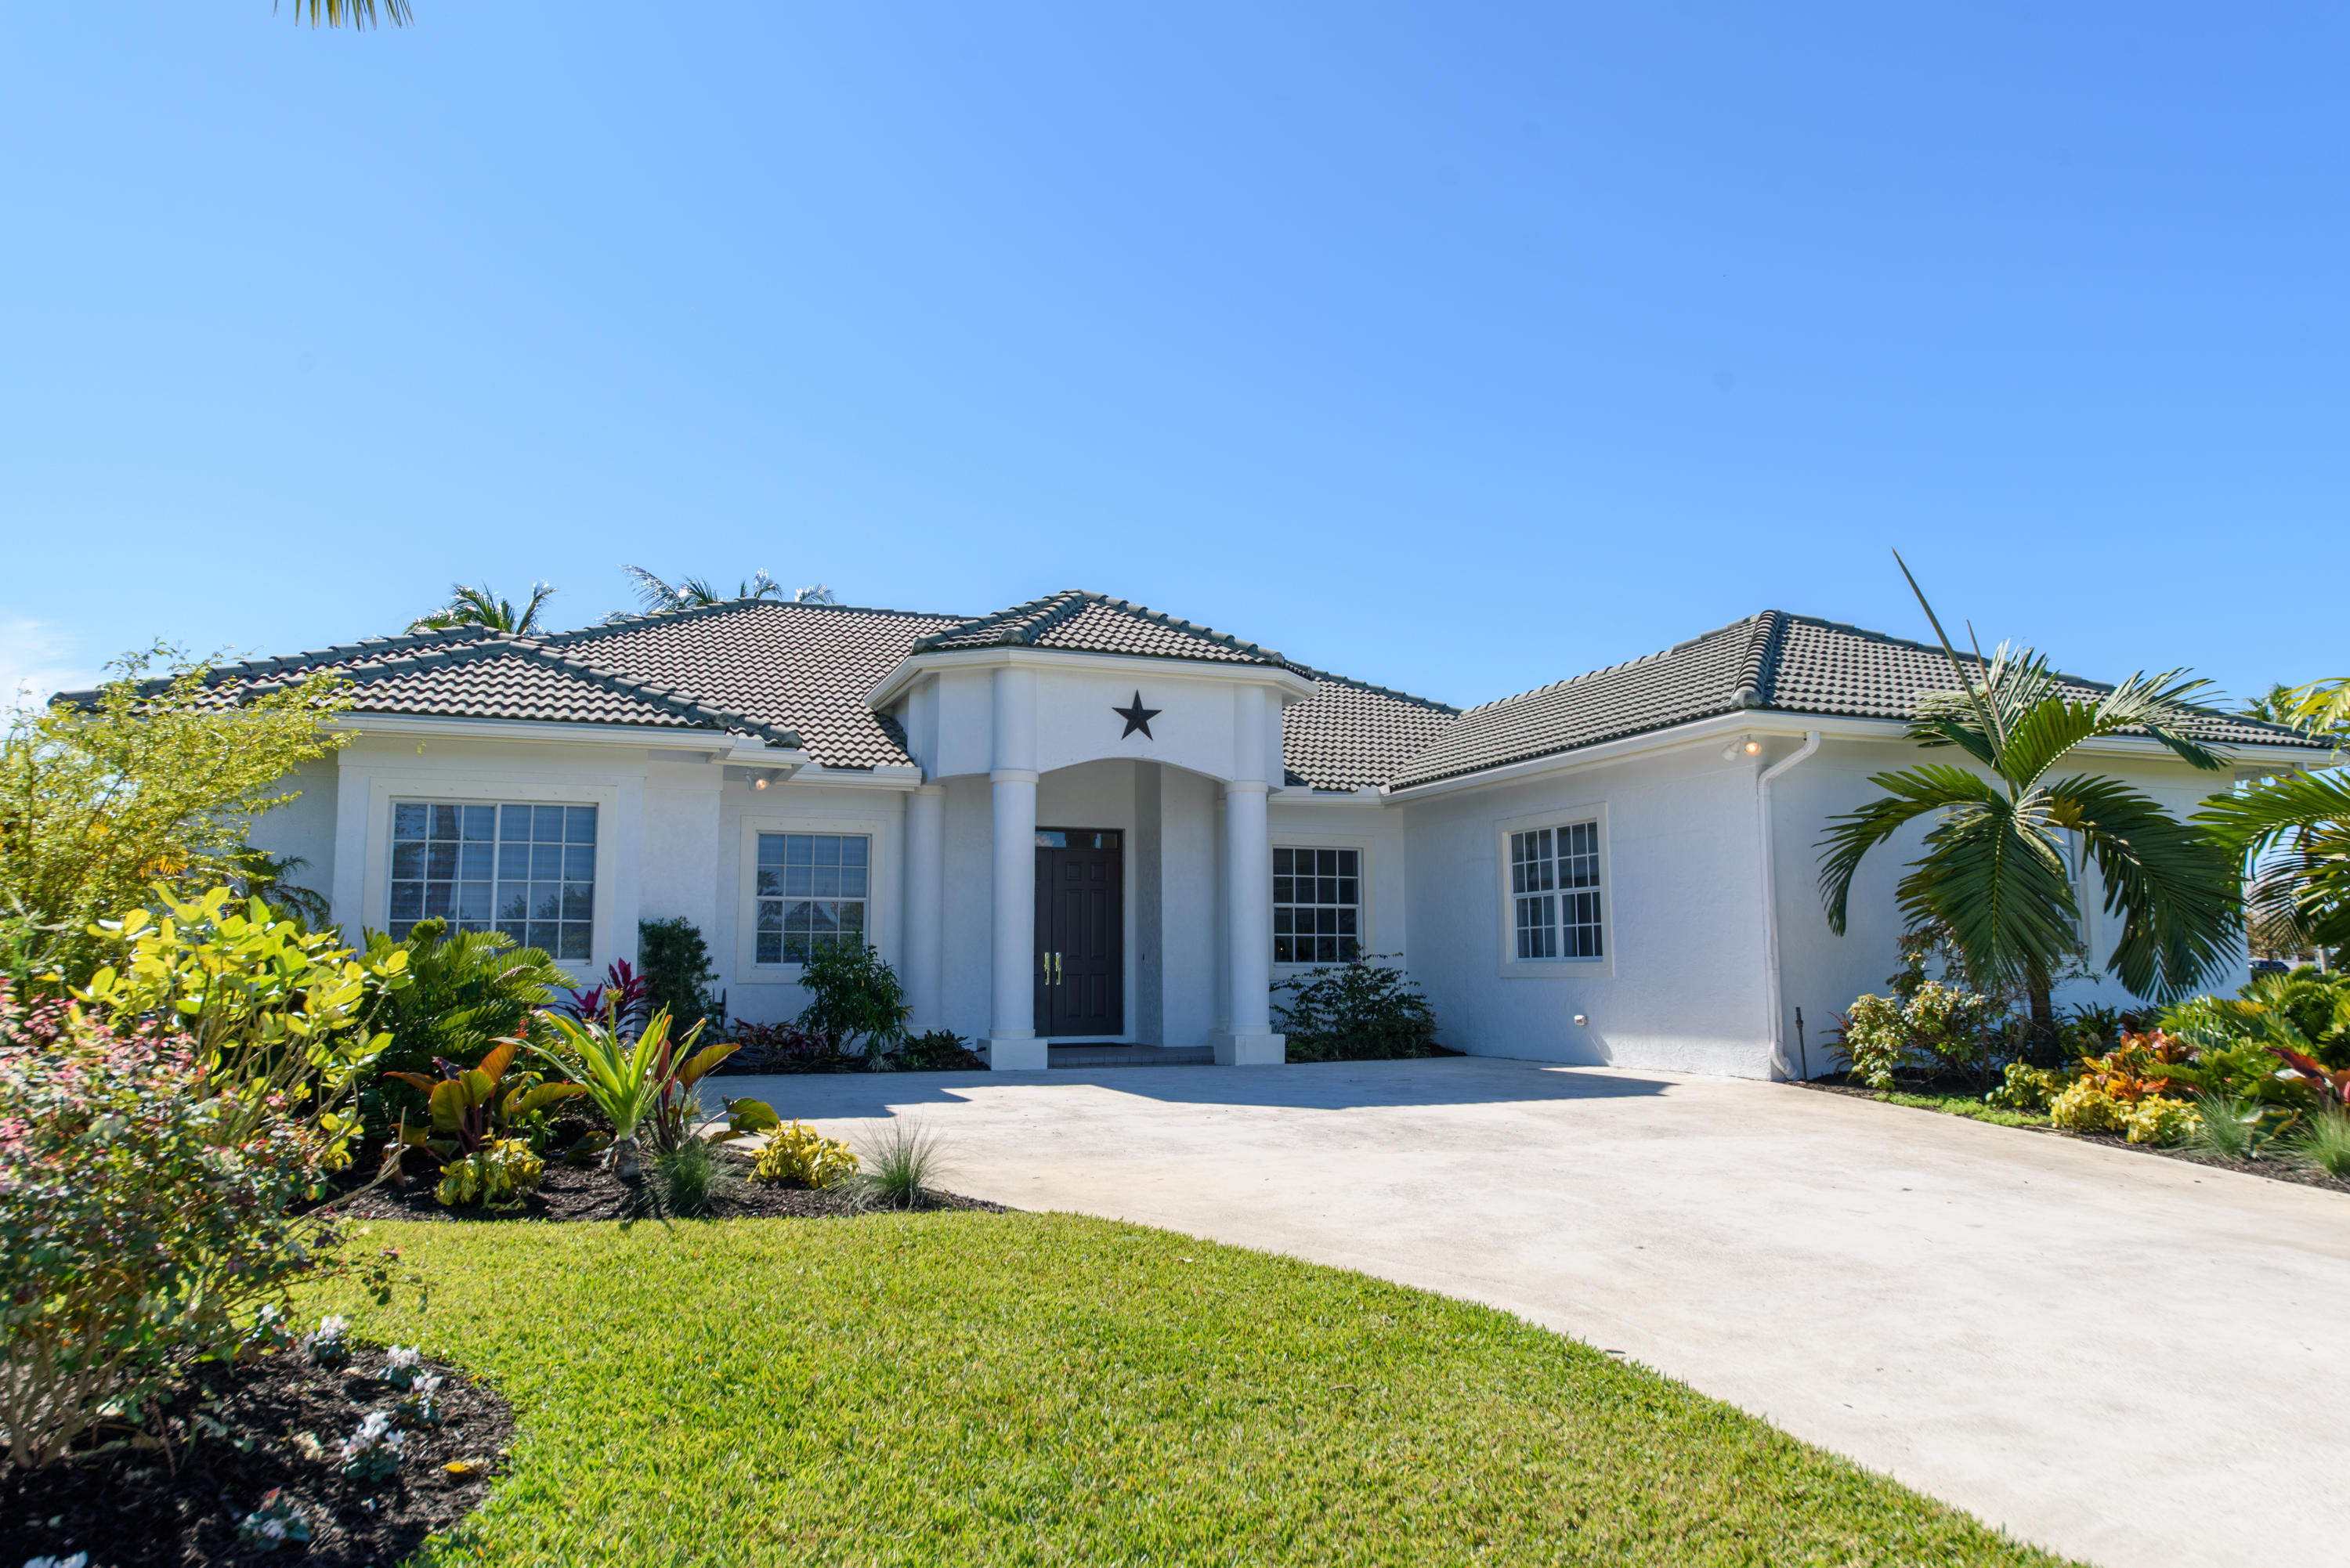 13200 Southfields Road, Wellington, Florida 33414, 4 Bedrooms Bedrooms, ,3 BathroomsBathrooms,Single Family,For Rent,Southfields 2,Southfields,13200,RX-10519372